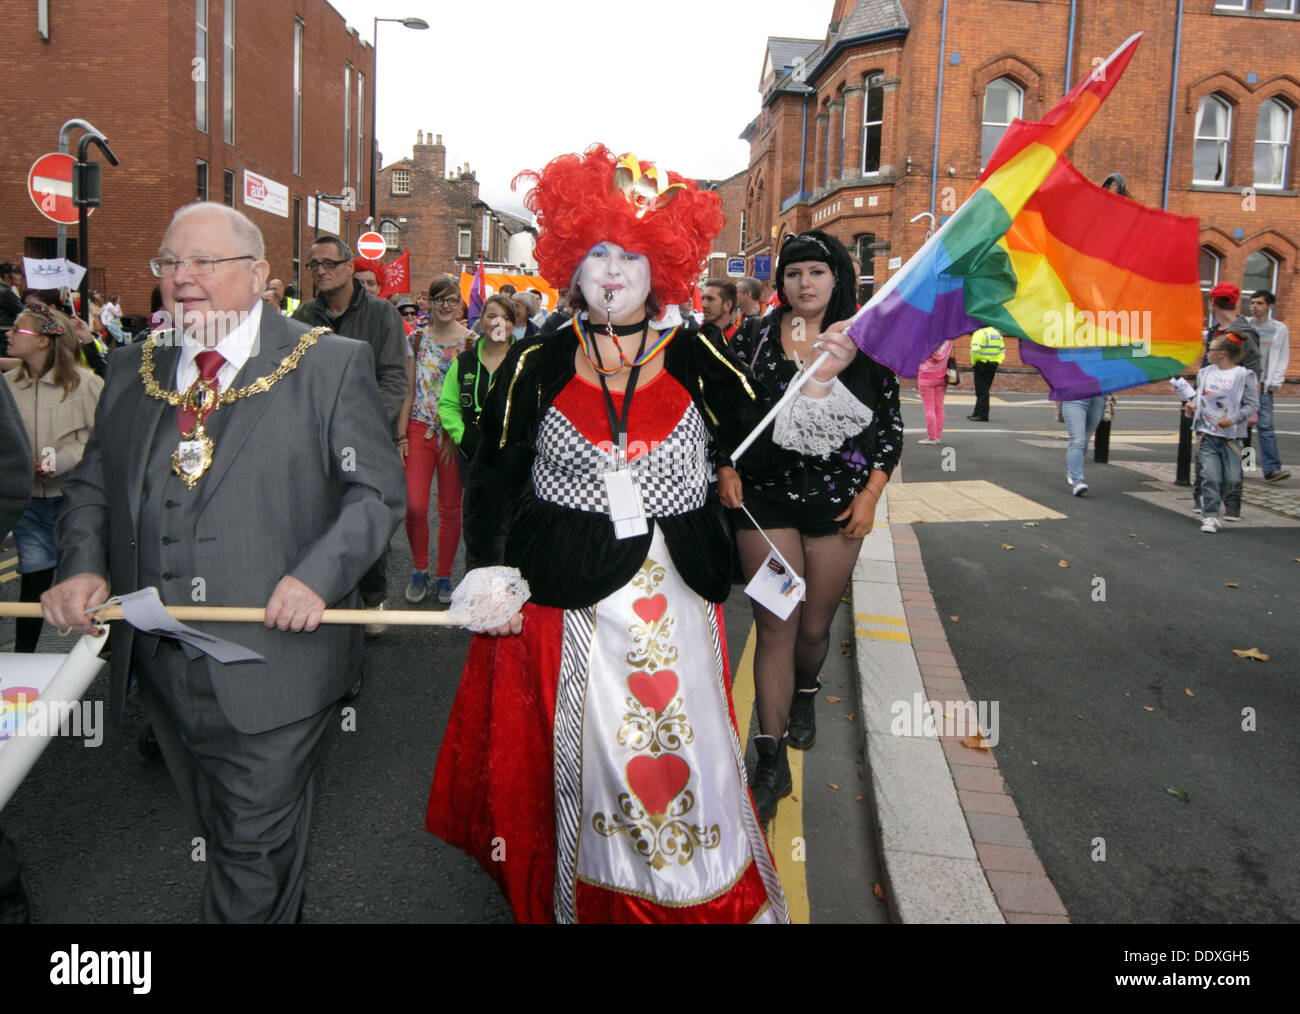 Lord Mayor, Warrington LGBT Pride event , September in Town Centre, Cheshire, England, UK - Stock Image